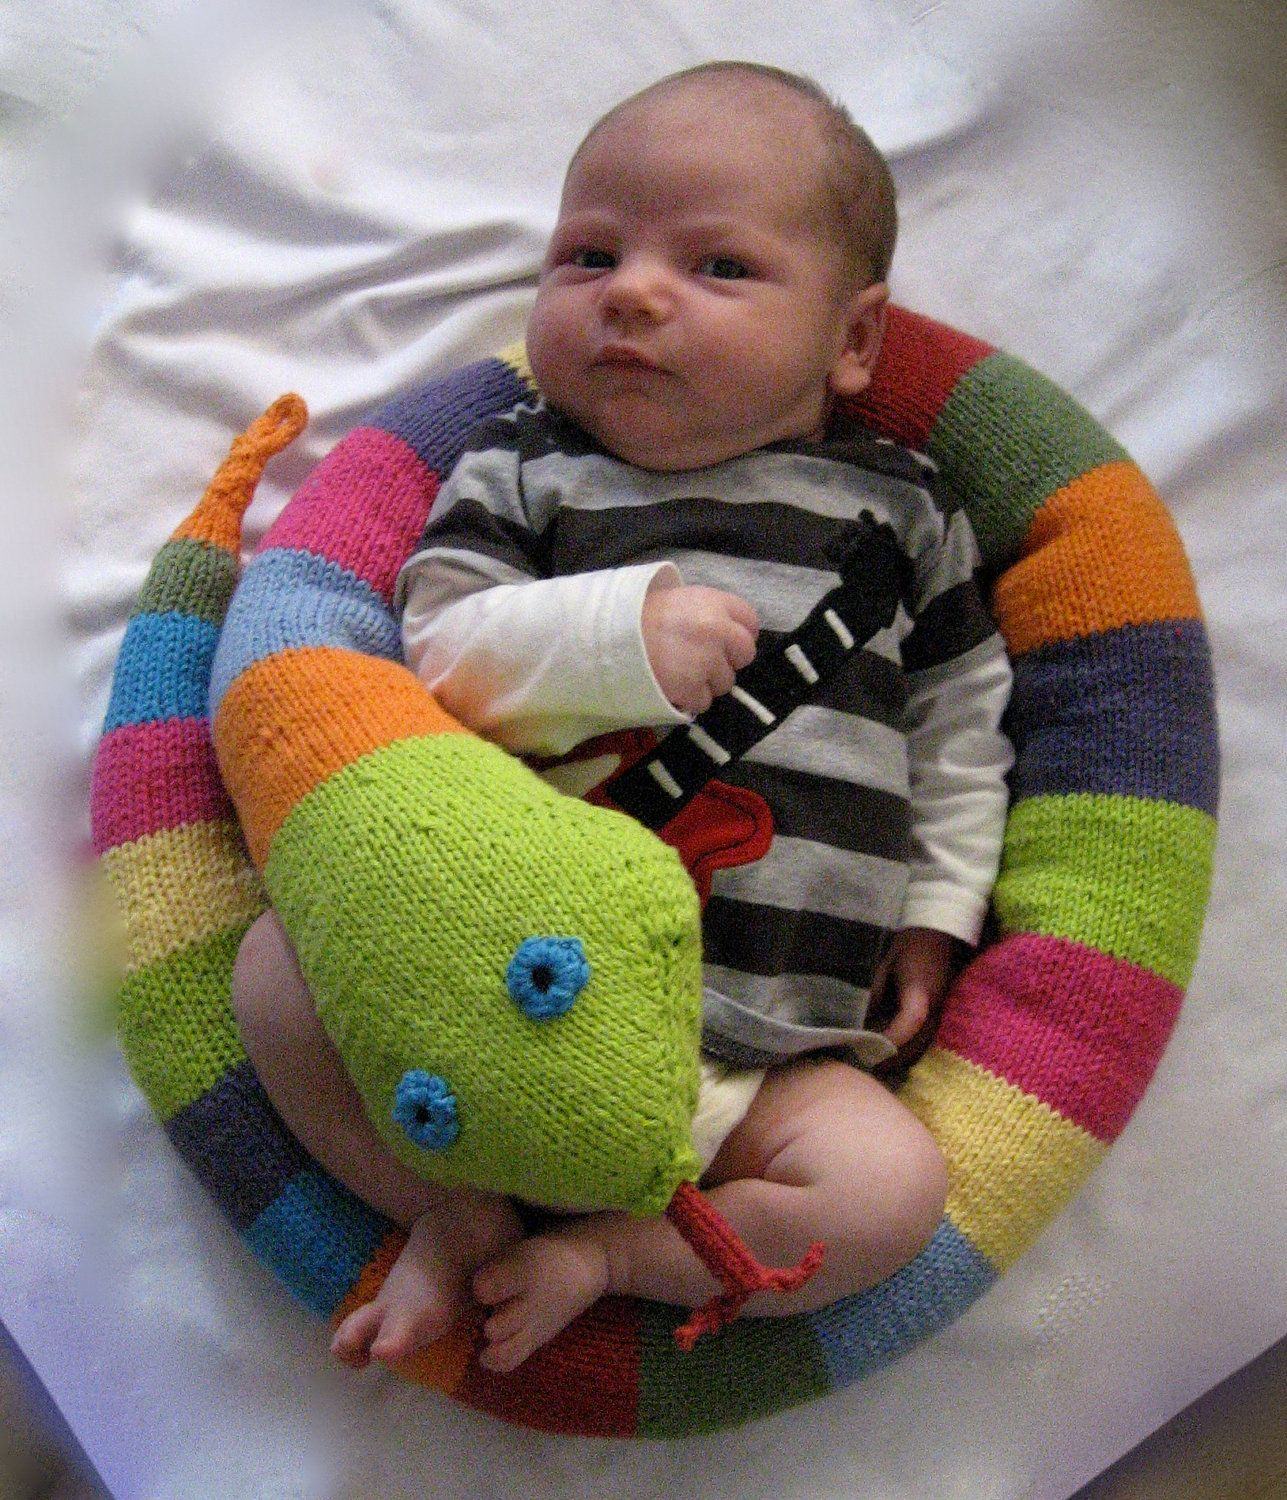 toy cotton snake for babies children teens adults in colors of